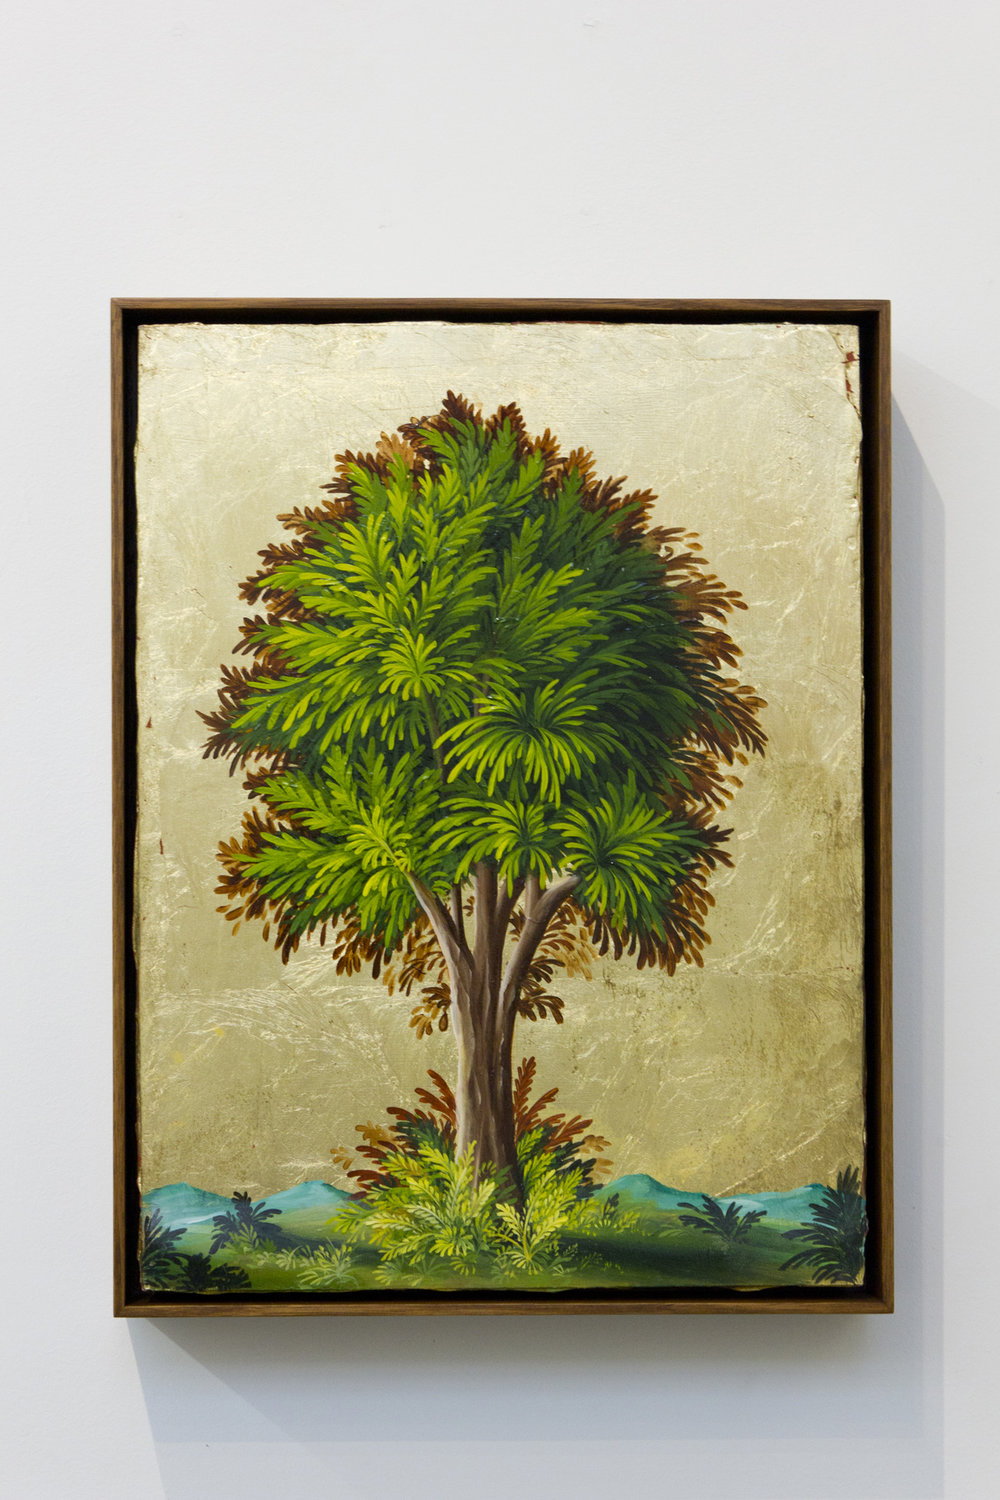 PETER DAVERINGTON   Portrait of a Tree #3  2017 Oil and gold leaf on panel 41 x 31 cm Frame: 43 x 33 cm